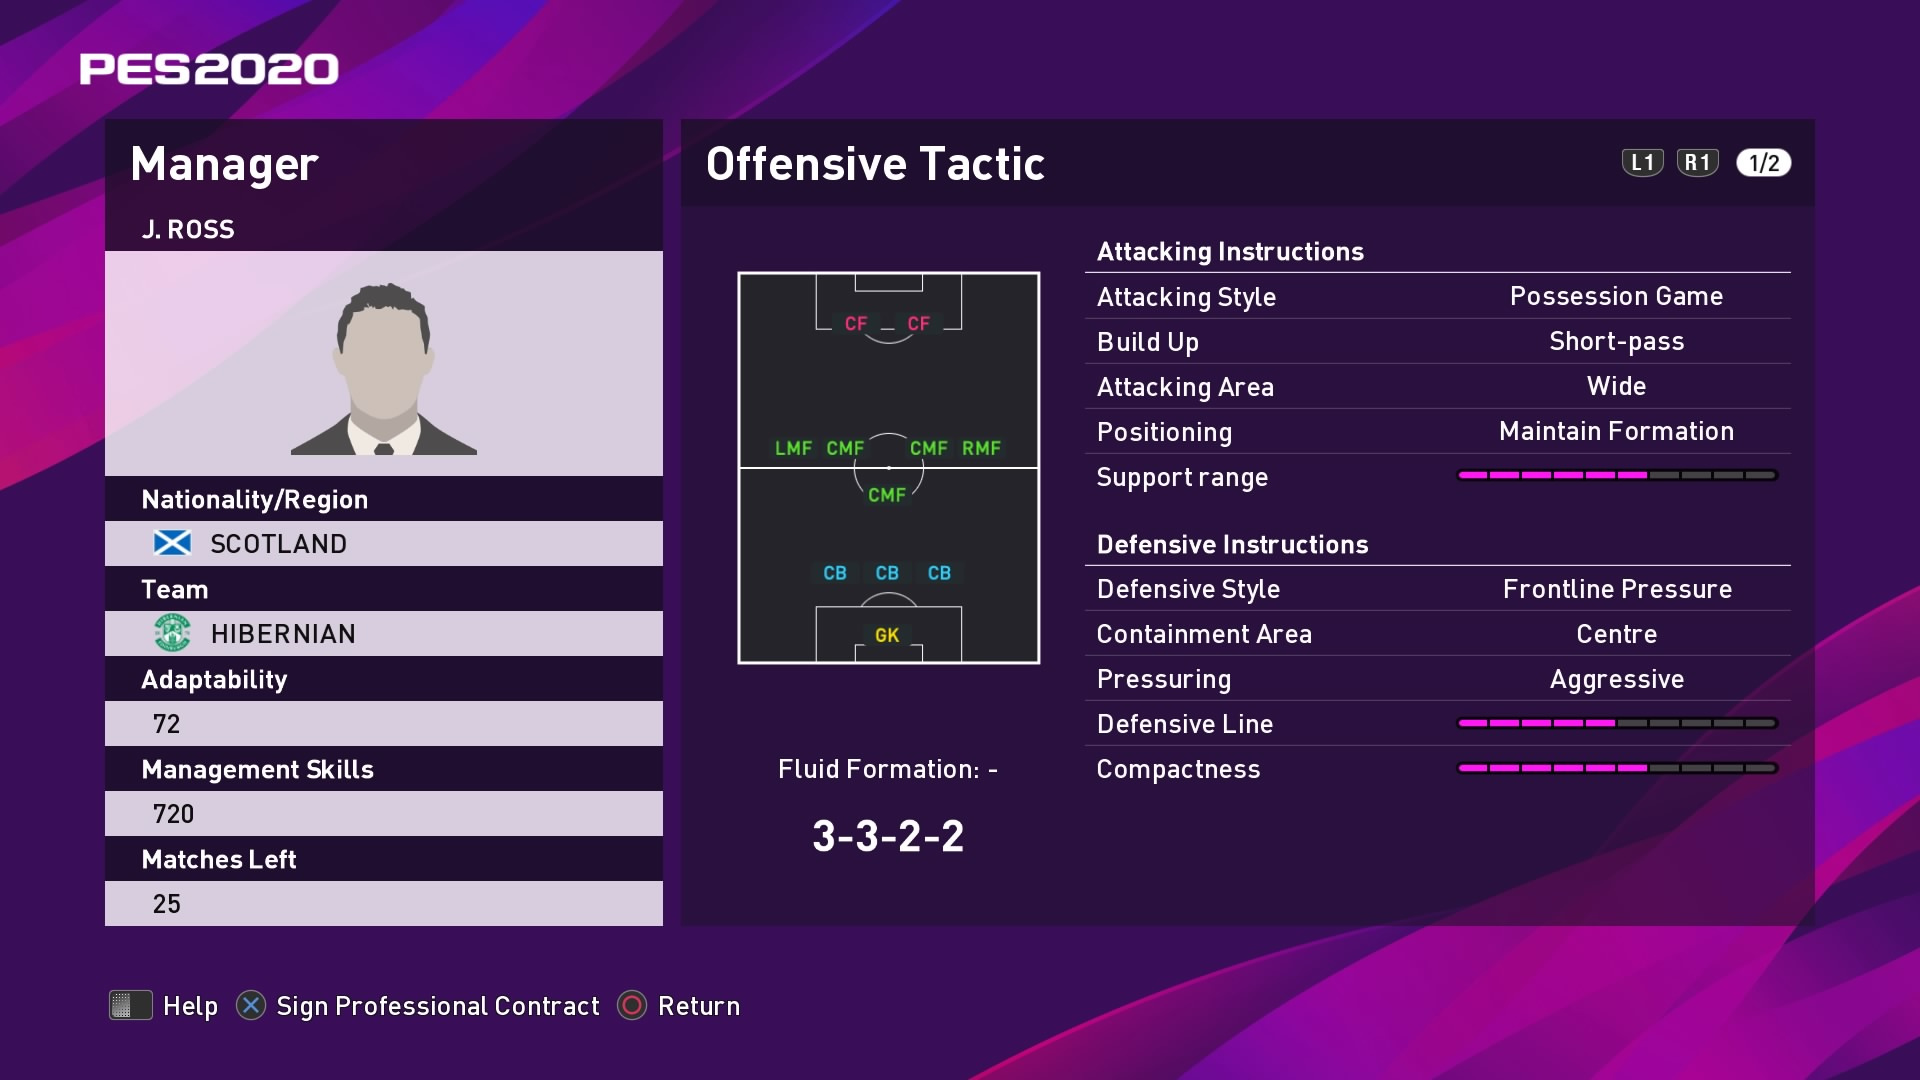 J. Ross (Jack Ross) Offensive Tactic in PES 2020 myClub